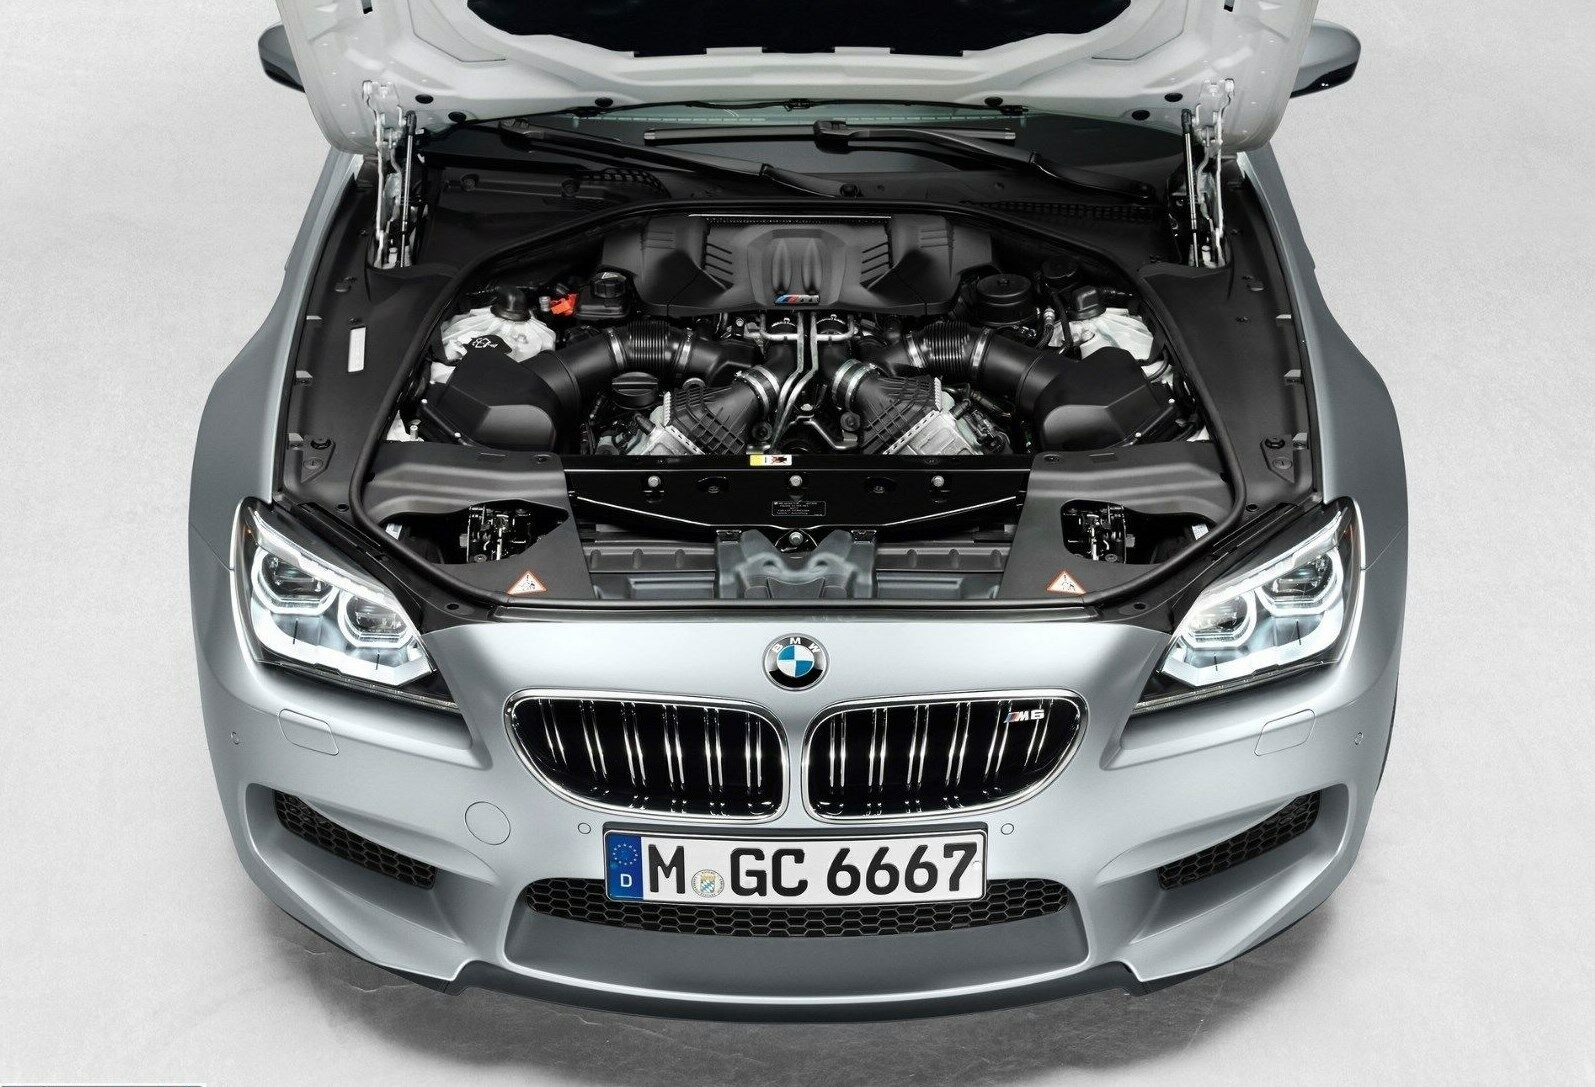 BMW Service Repair Workshop Factory Manual 525i 528i 530i 540i E39 1 of  1FREE Shipping ...